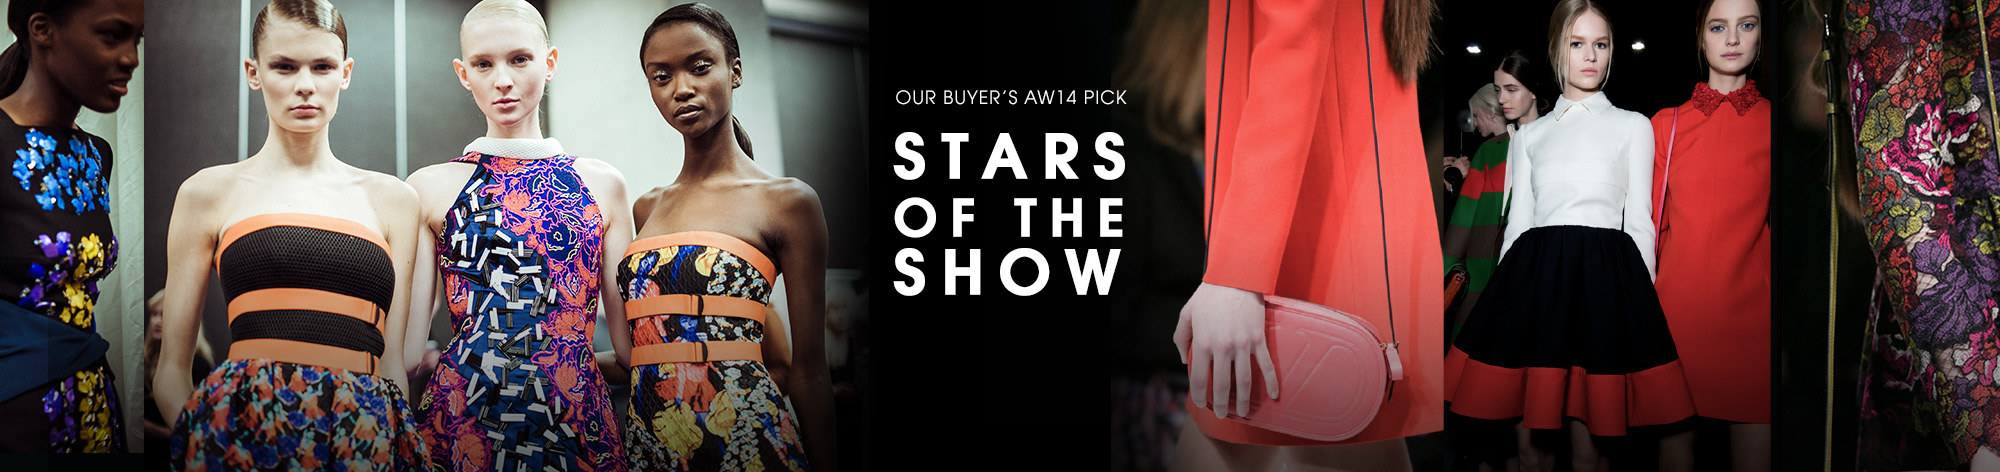 OUR BUYER'S AW14 PICK STARS OF THE SHOW